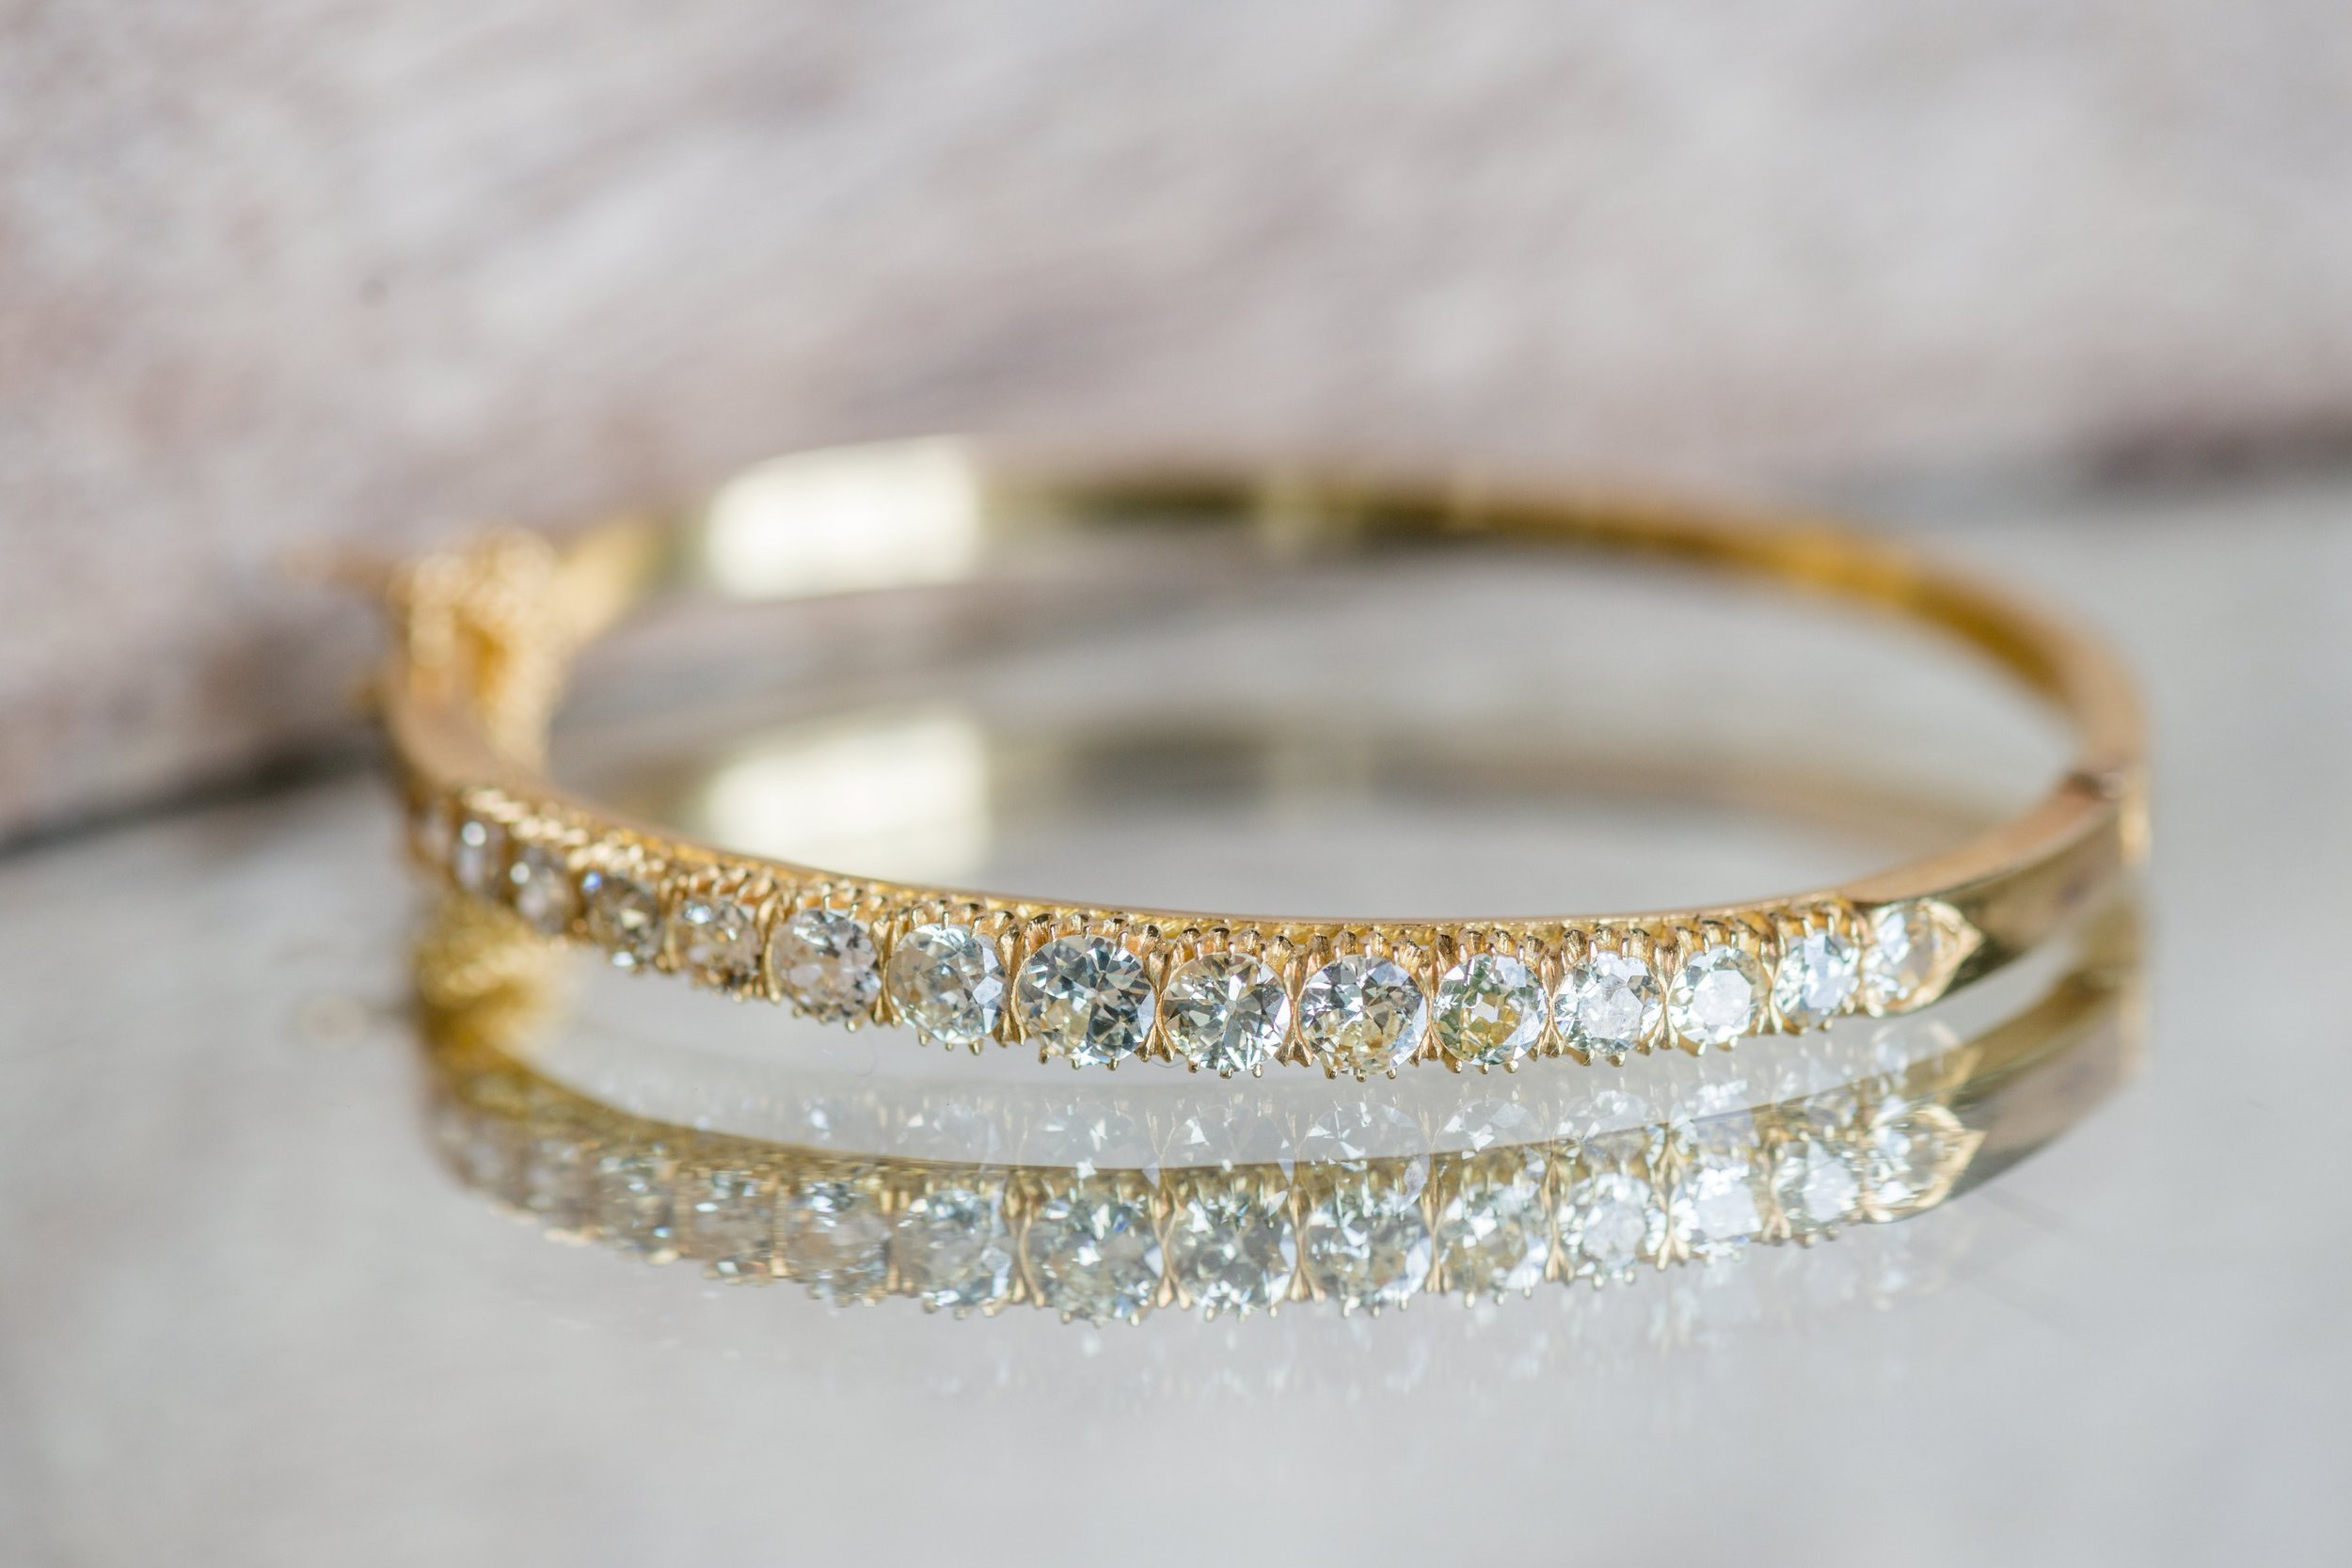 A stunning Old Mine cut diamond bangle bracelet perfect for all wardrobes and all occasions! Shop  HERE .